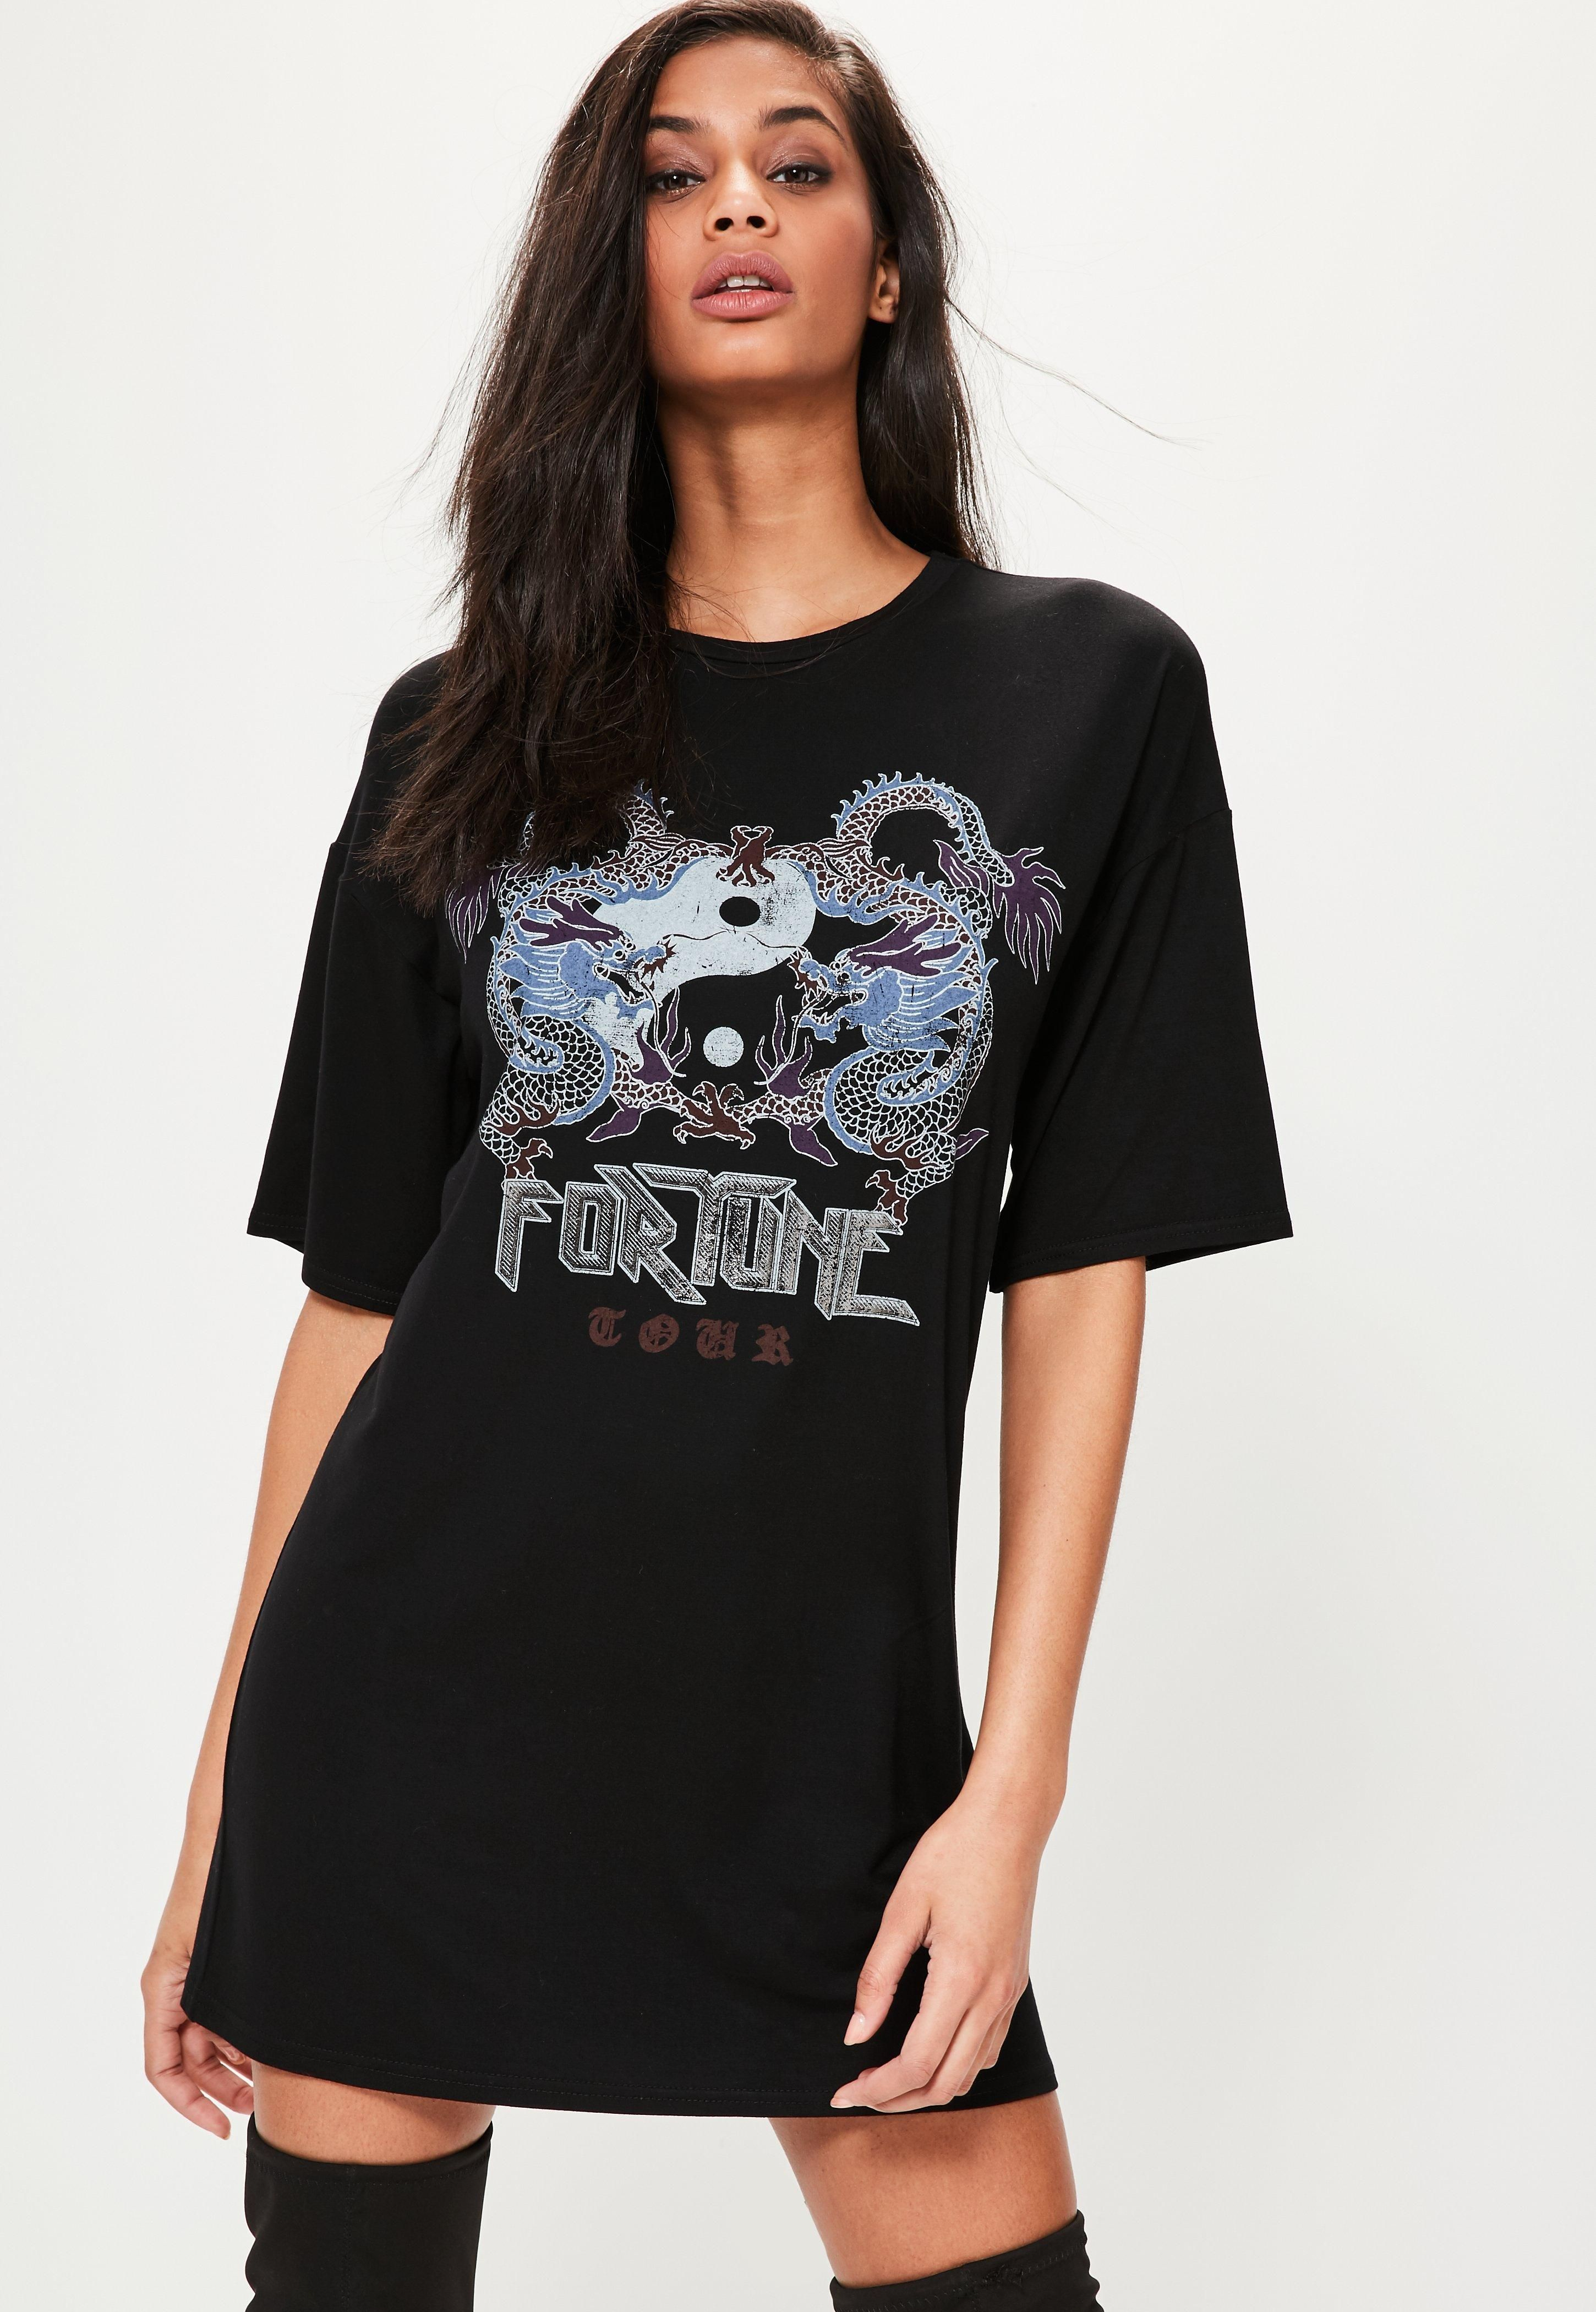 db025034267 Get wrapped up and release your inner grunge wearing this tshirt dress -  featuring a corset back, graphic print and oversized fit.